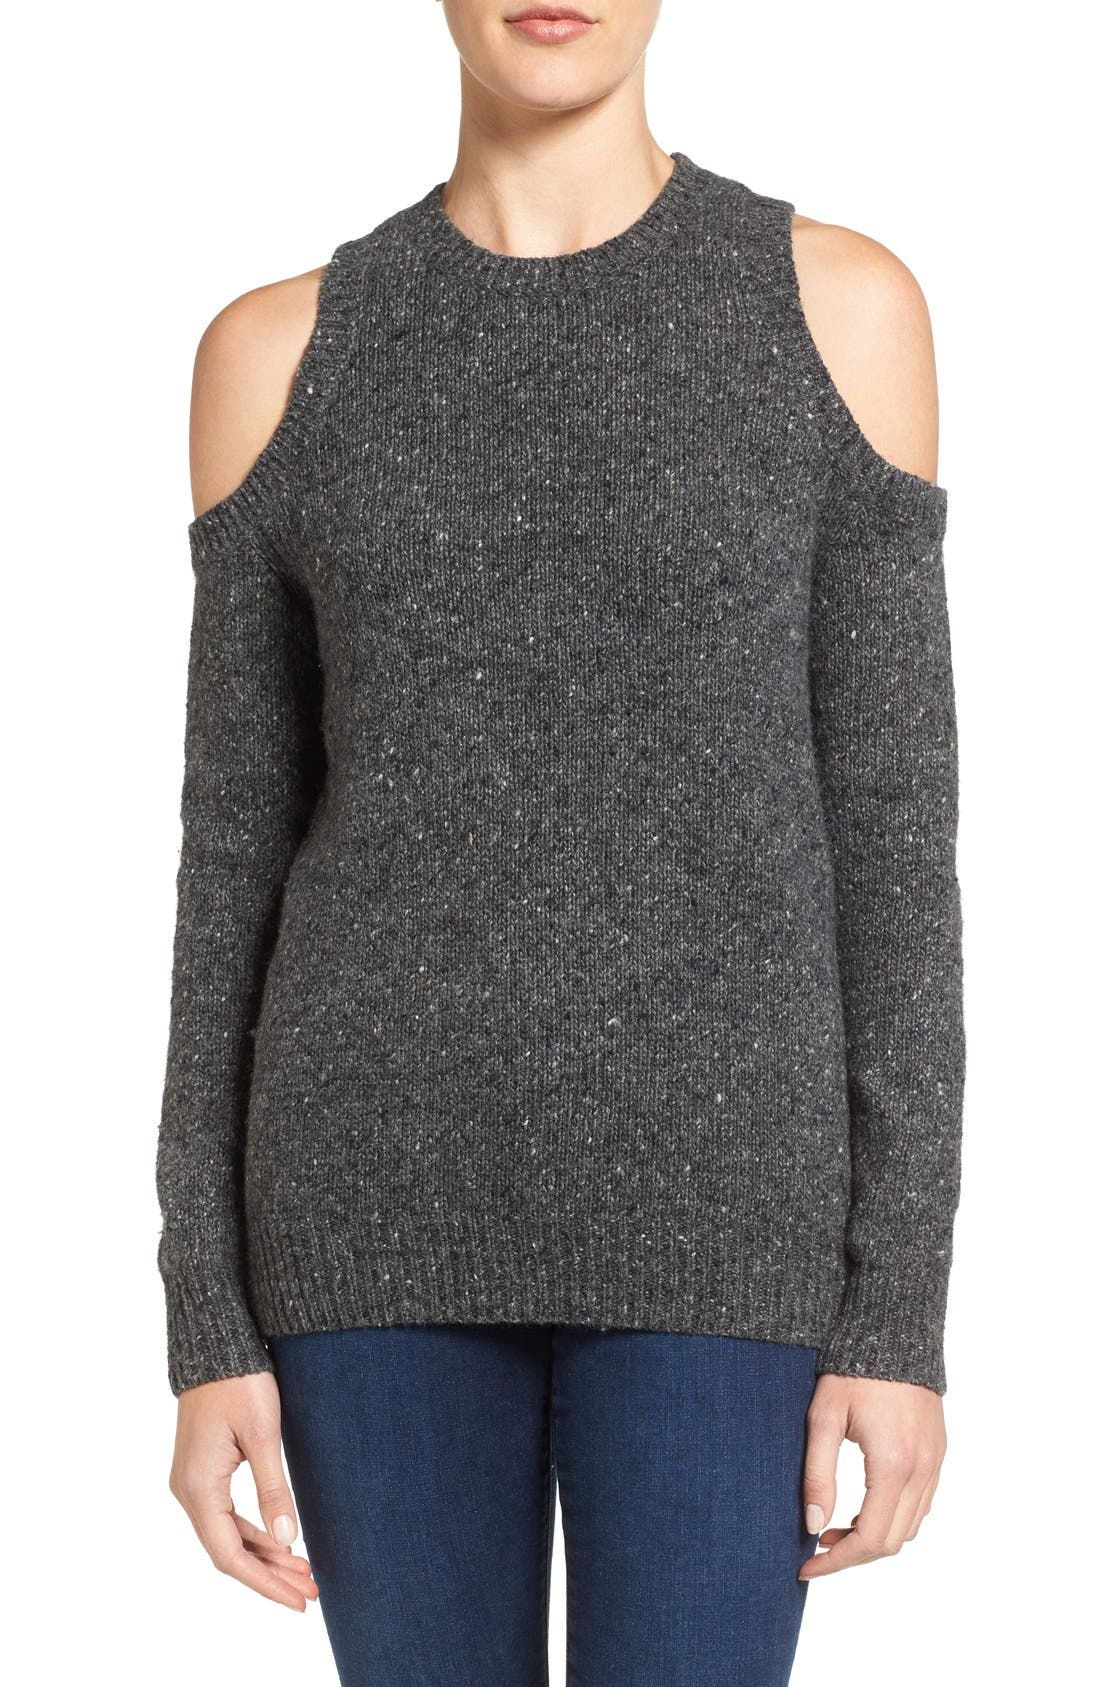 'Chapter' Cold Shoulder Sweater,                             Main thumbnail 1, color,                             020